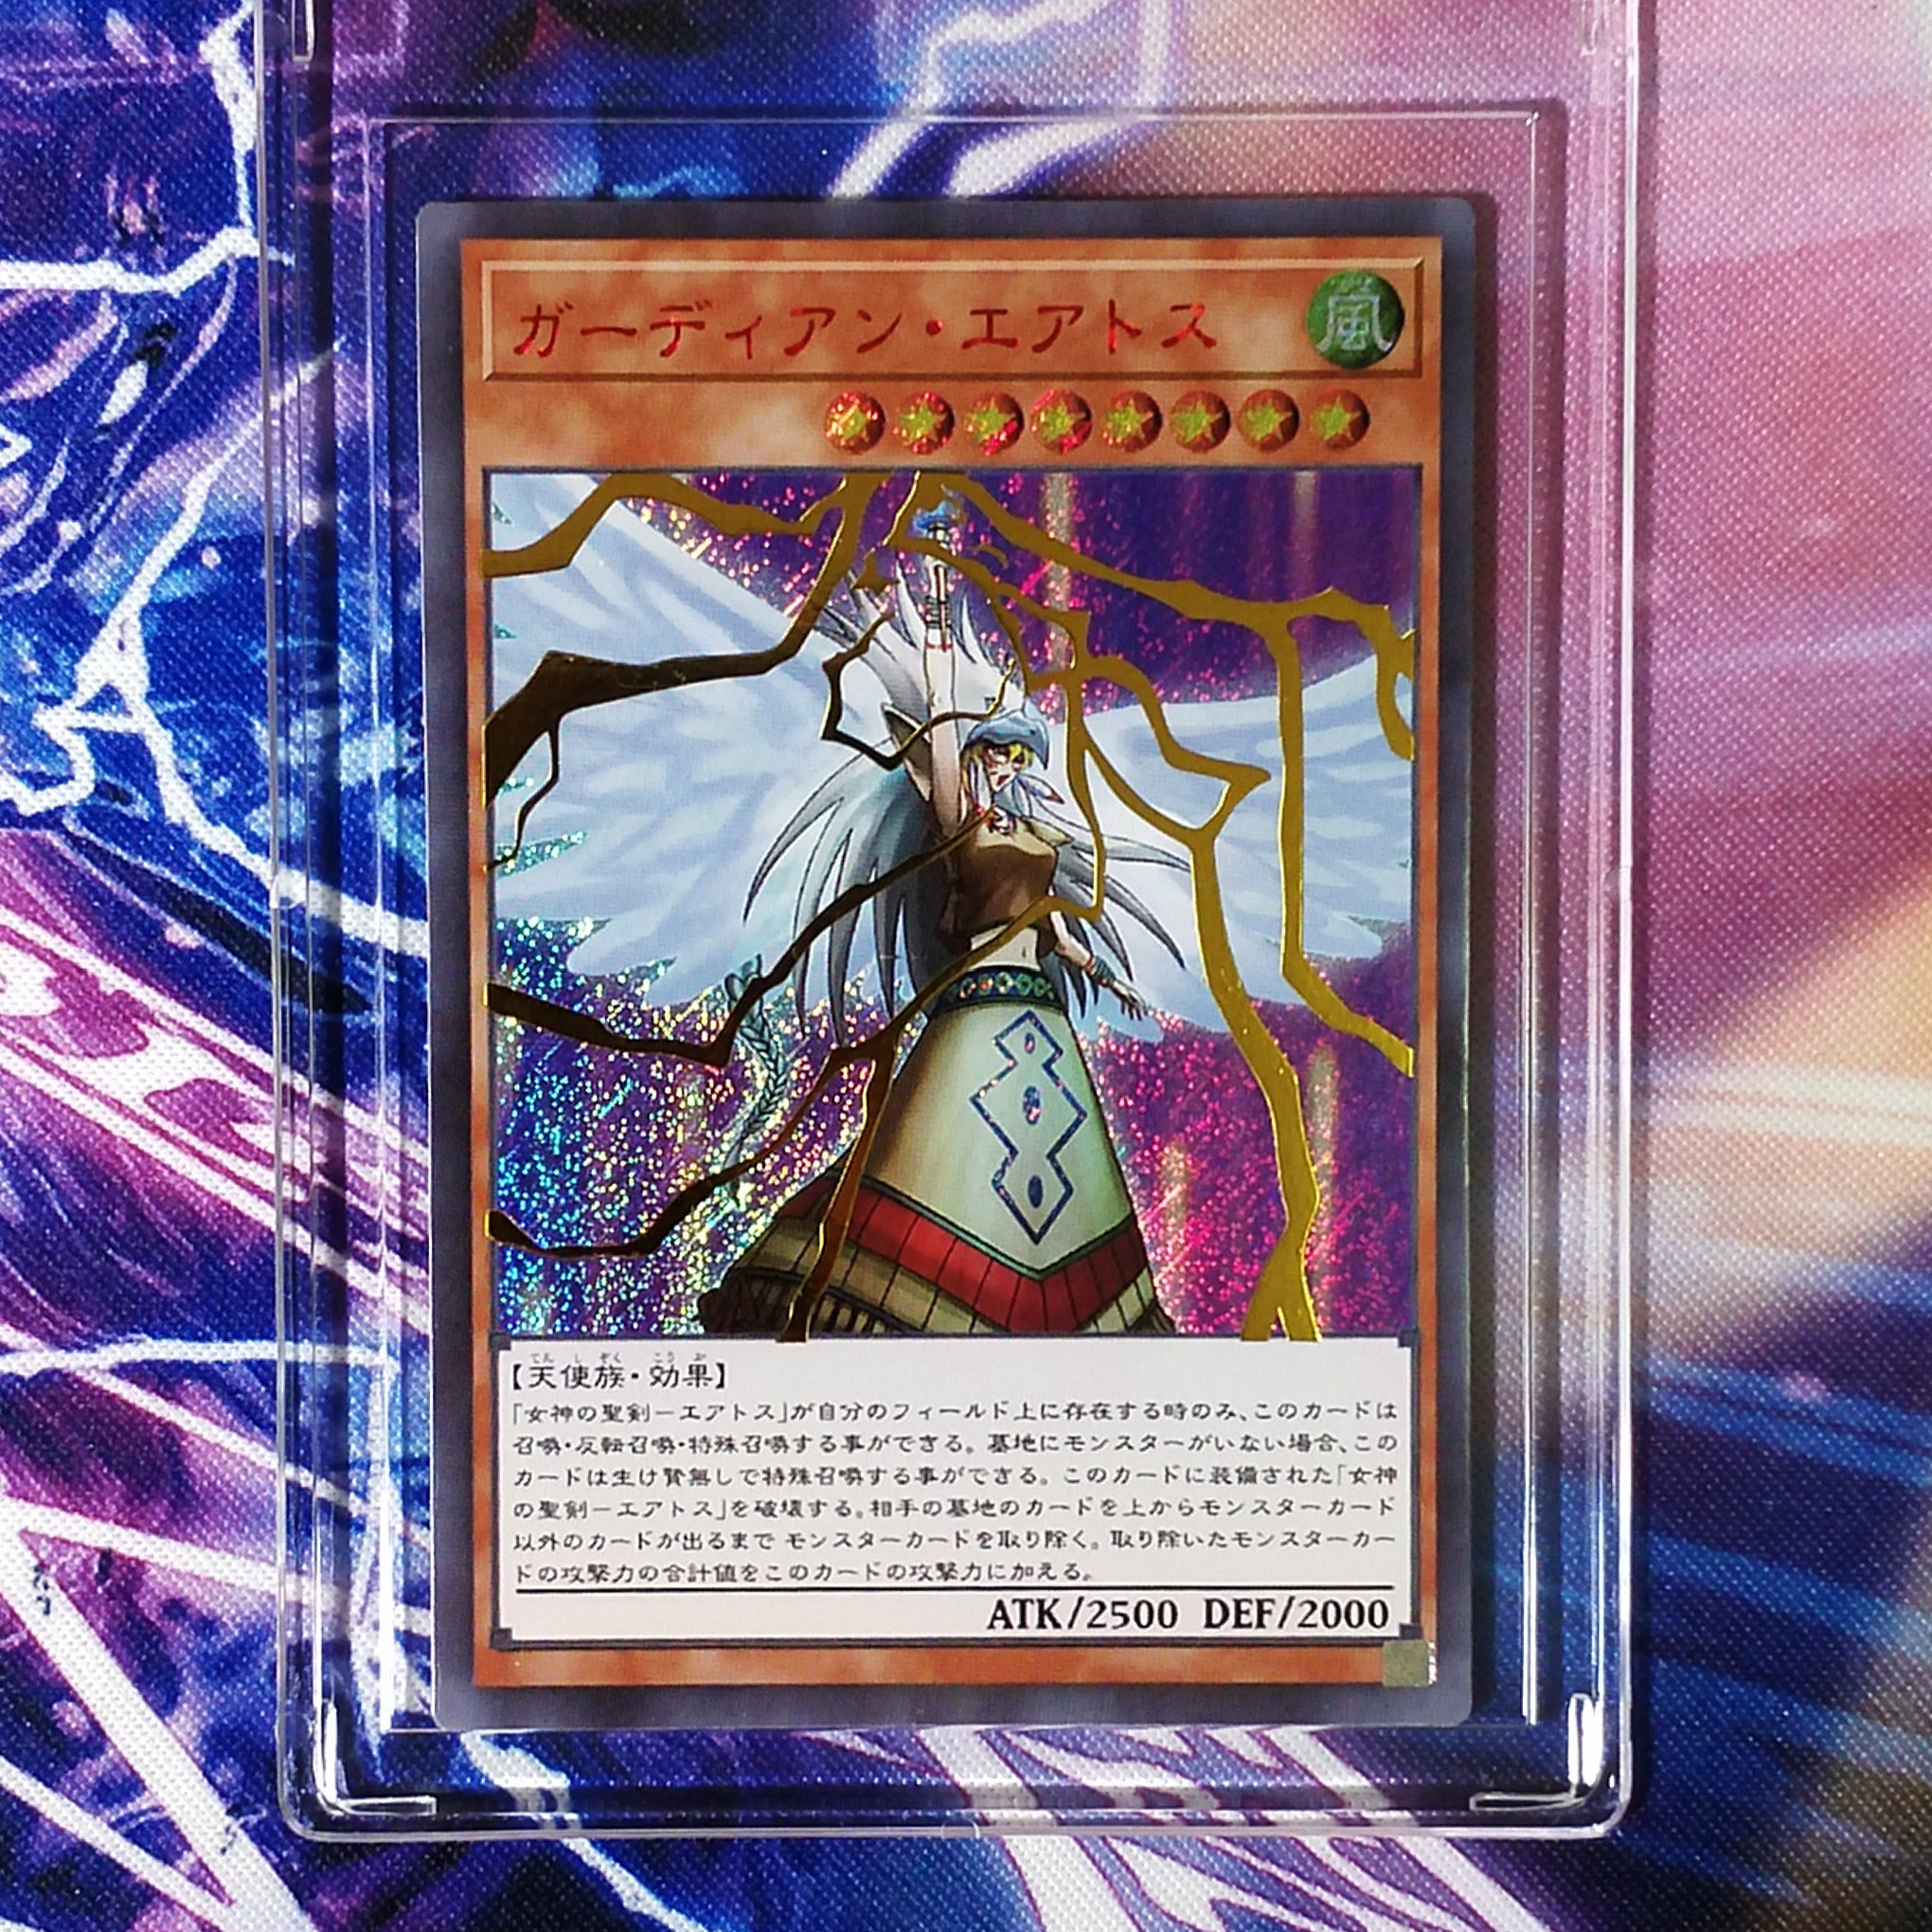 Yu Gi Oh Guardian Eatos DIY Colorful Toys Hobbies Hobby Collectibles Game Collection Anime Cards